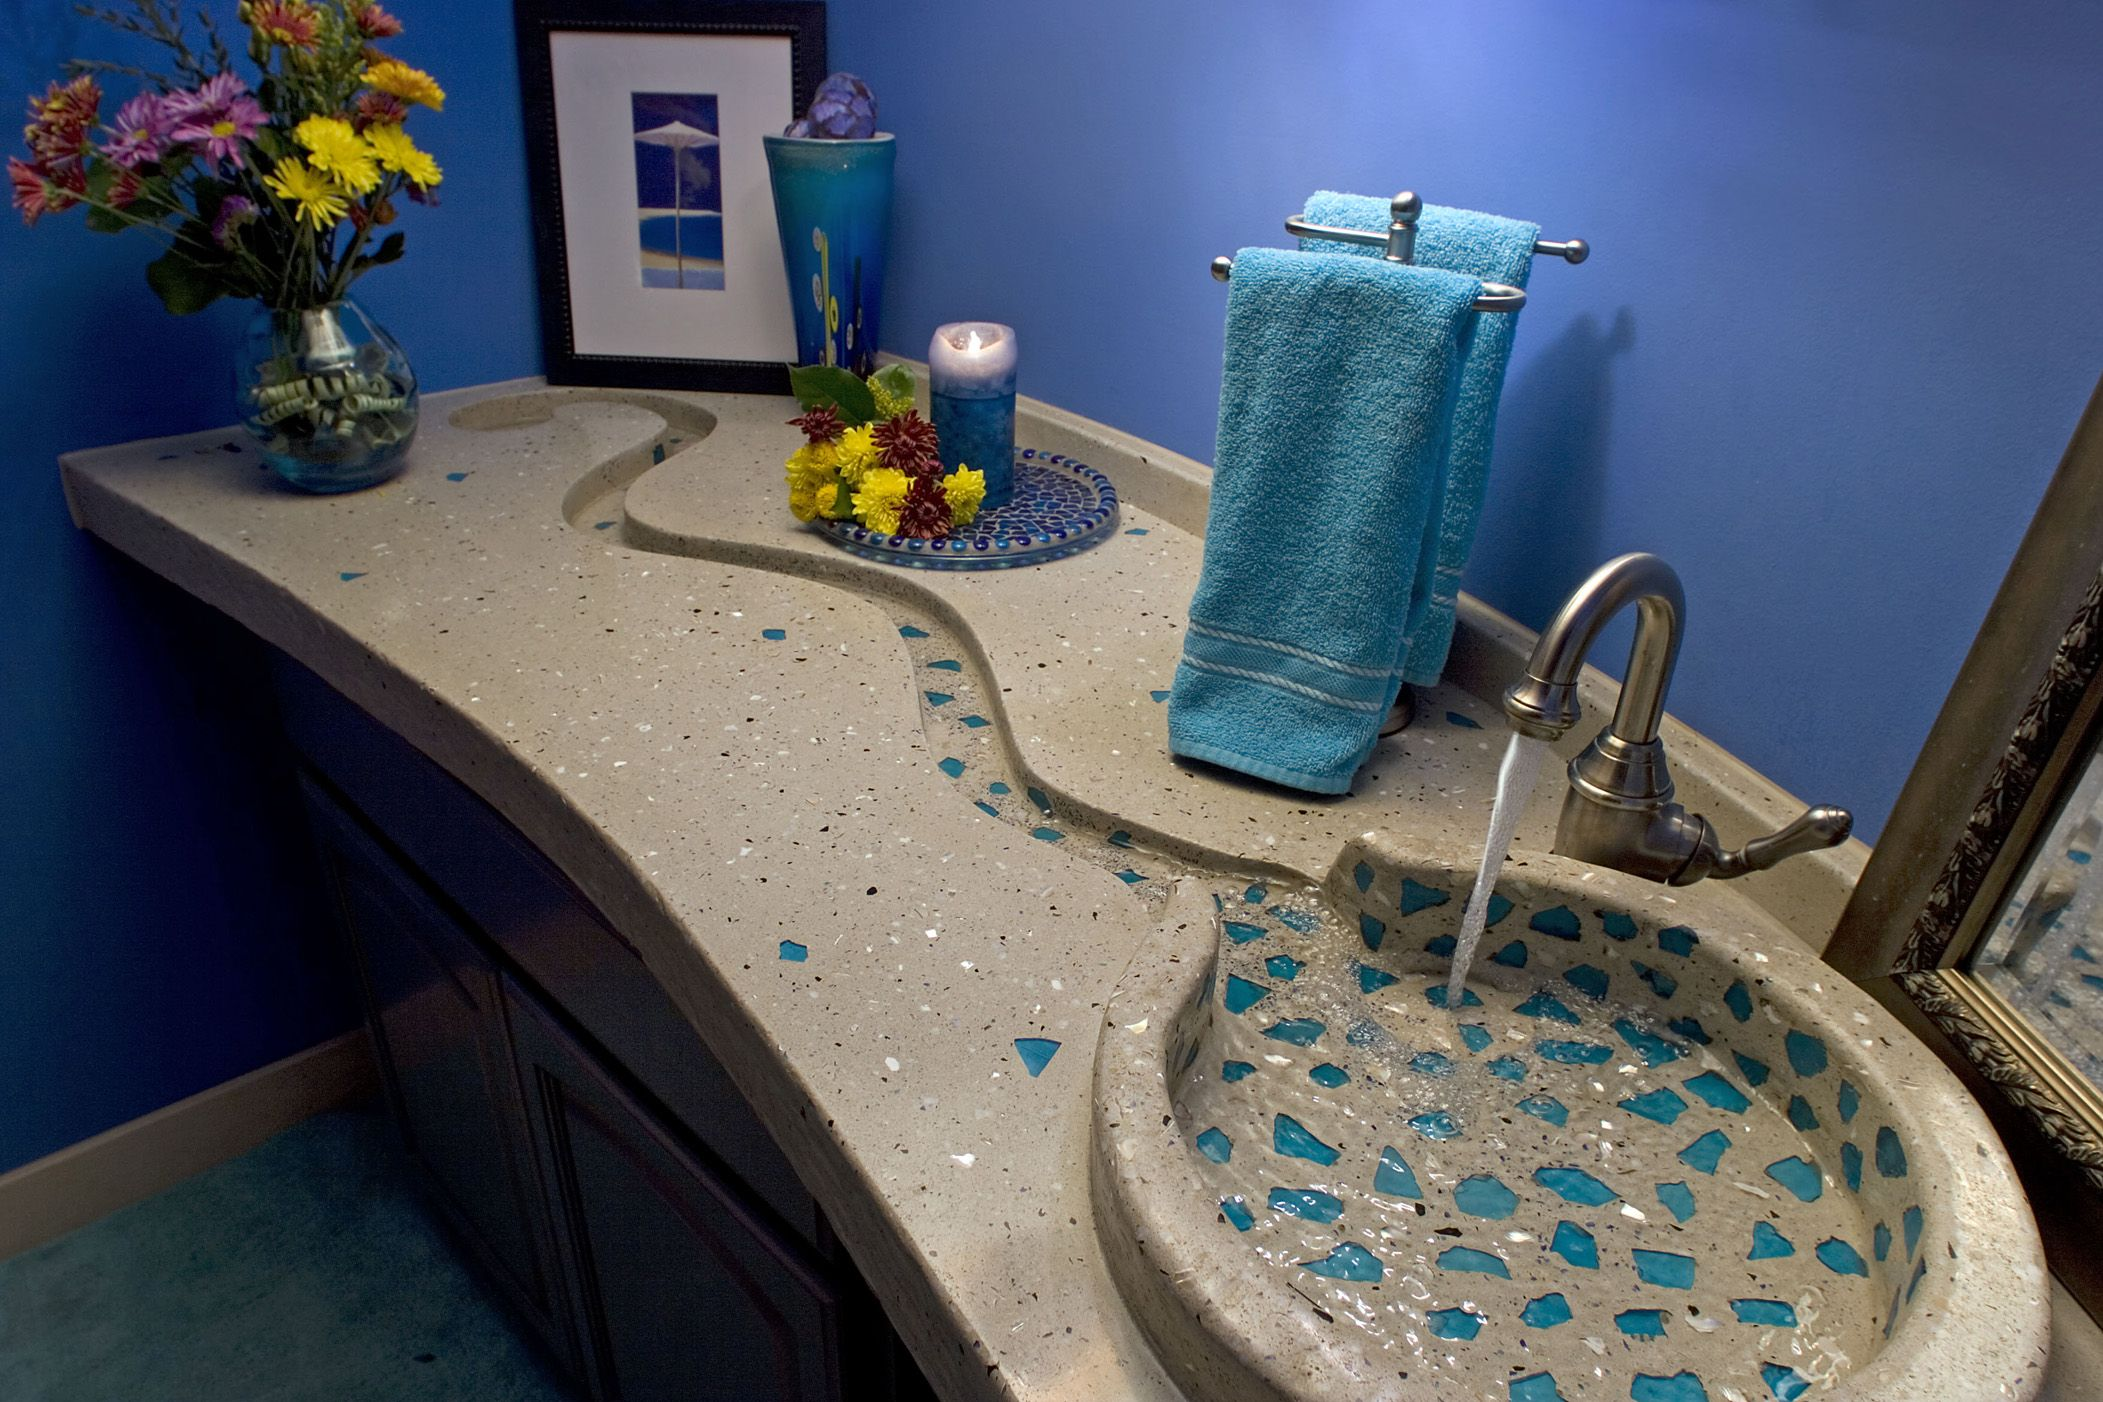 one of the coolest bathroom sinks I've seen.